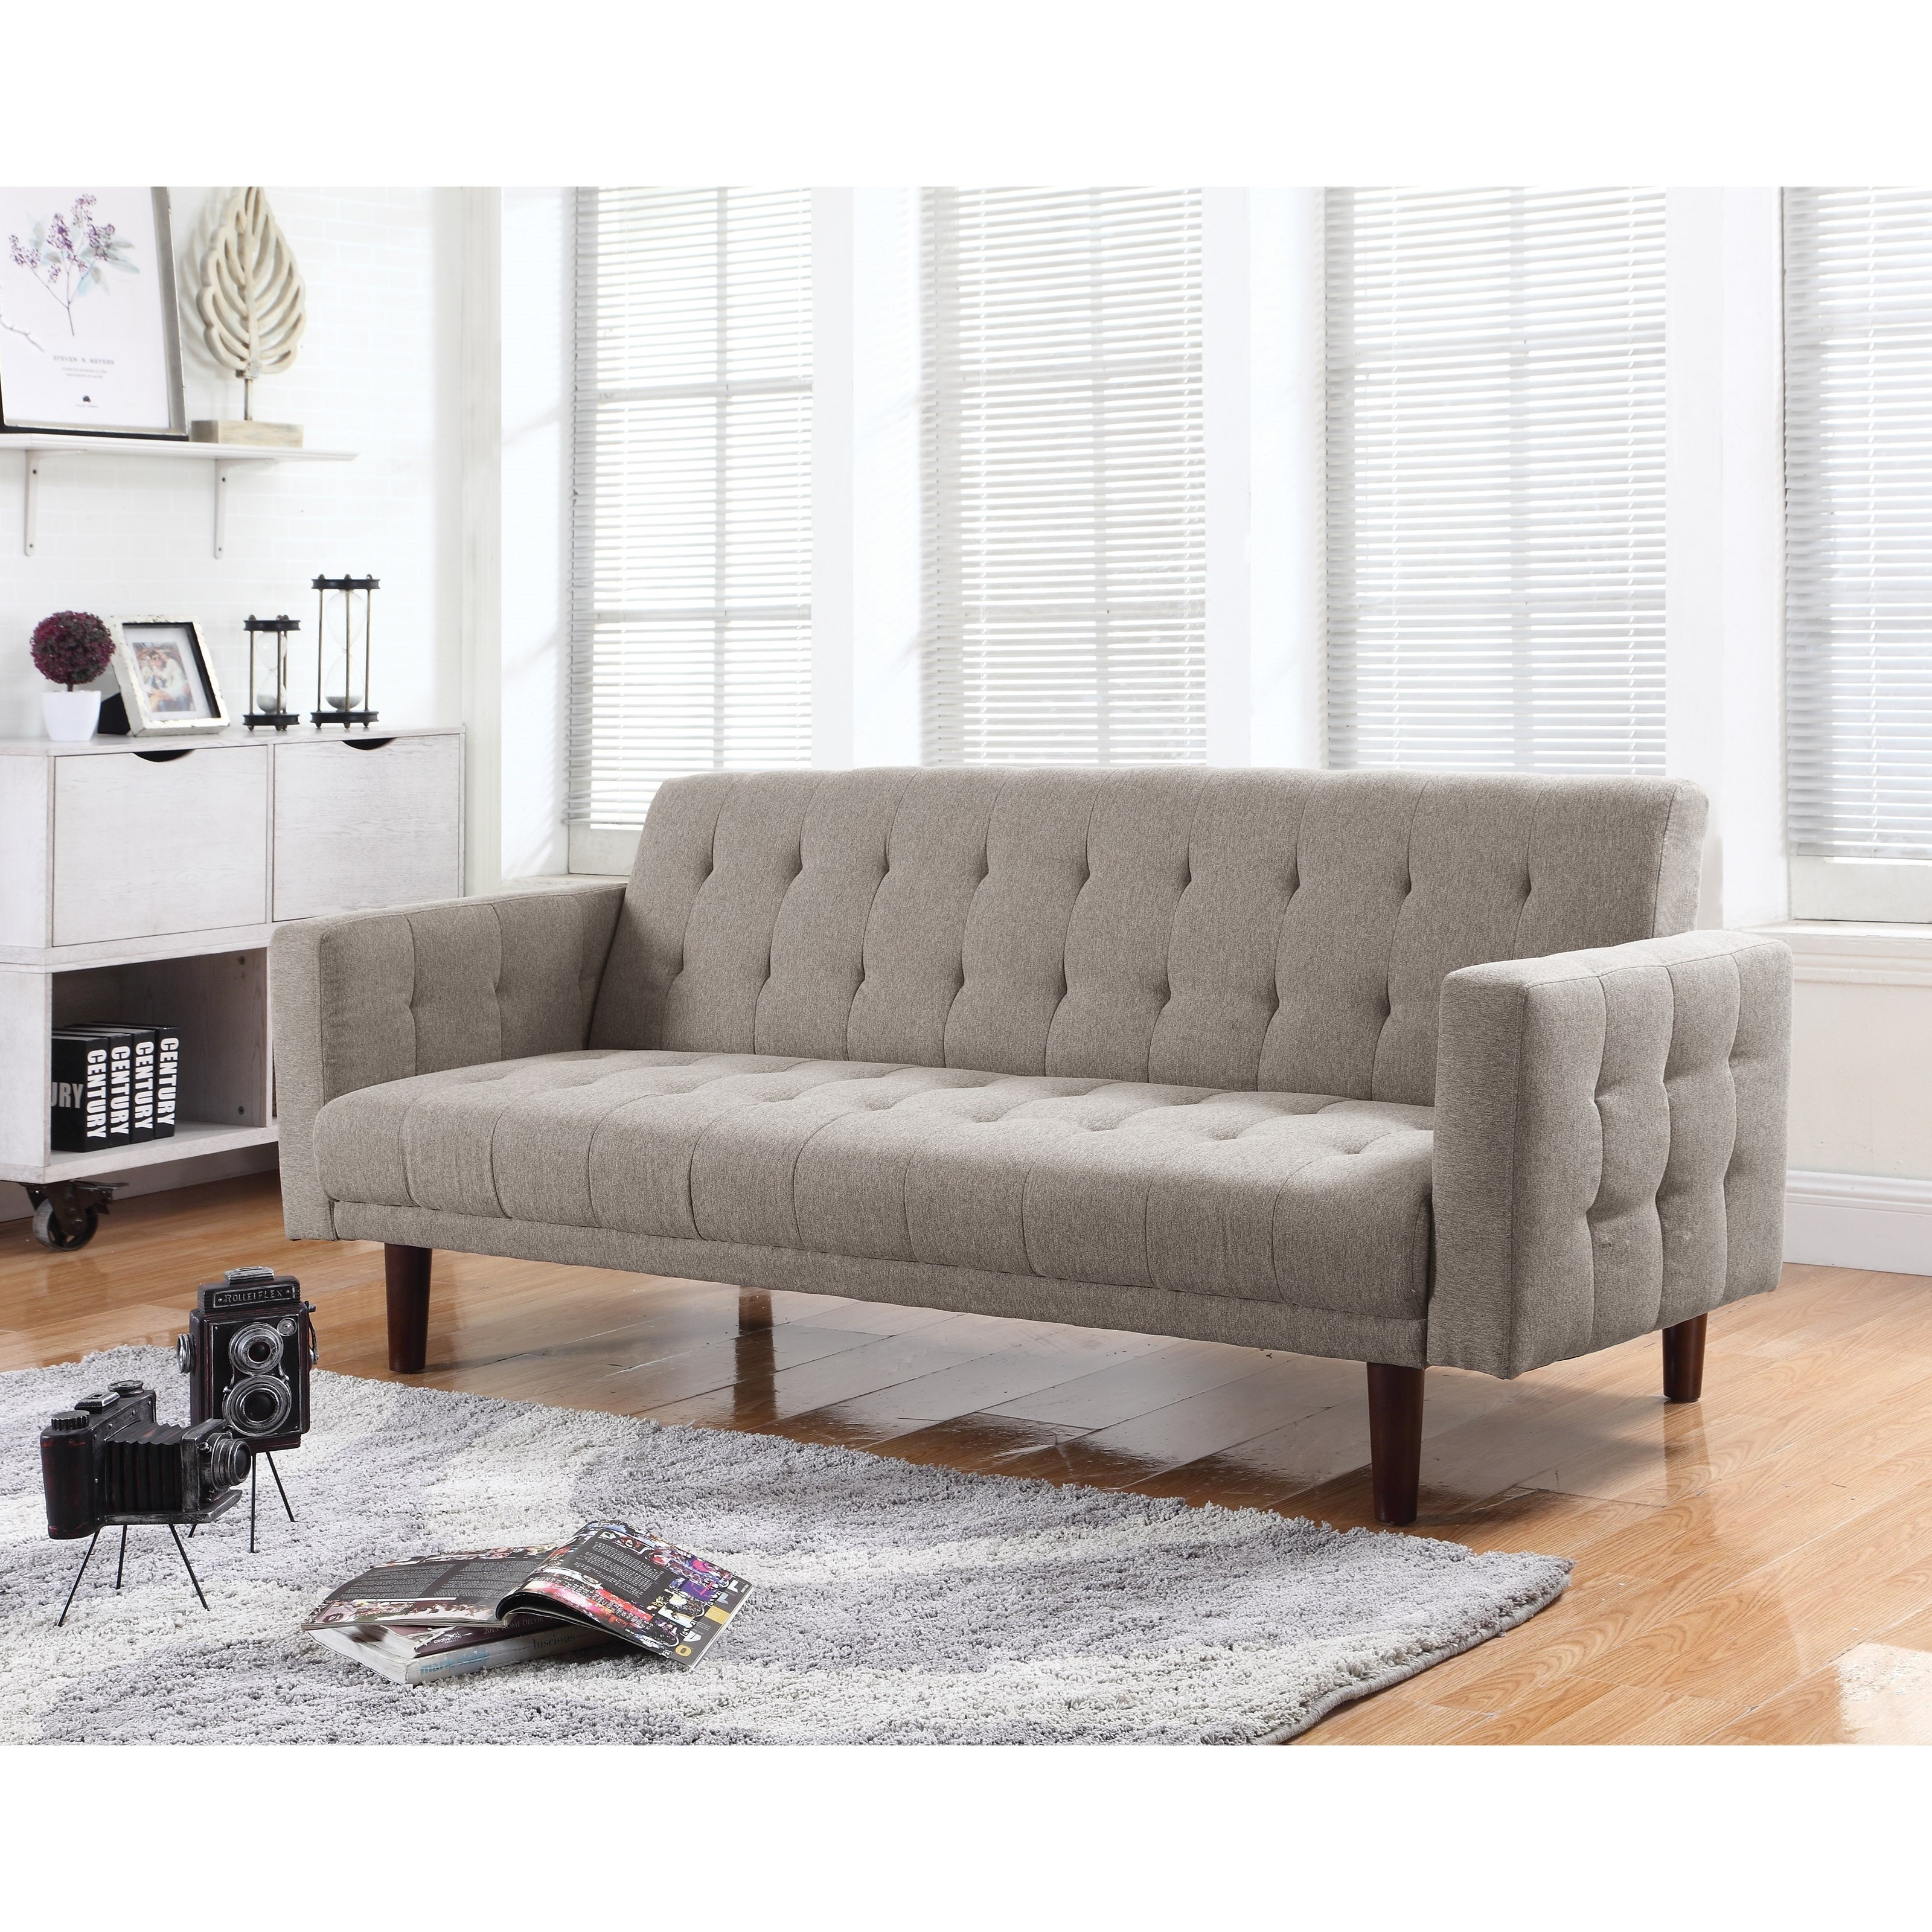 coaster futon sofa bed with removable armrests review fabric sectional and loveseat set pillows elizabeth ash